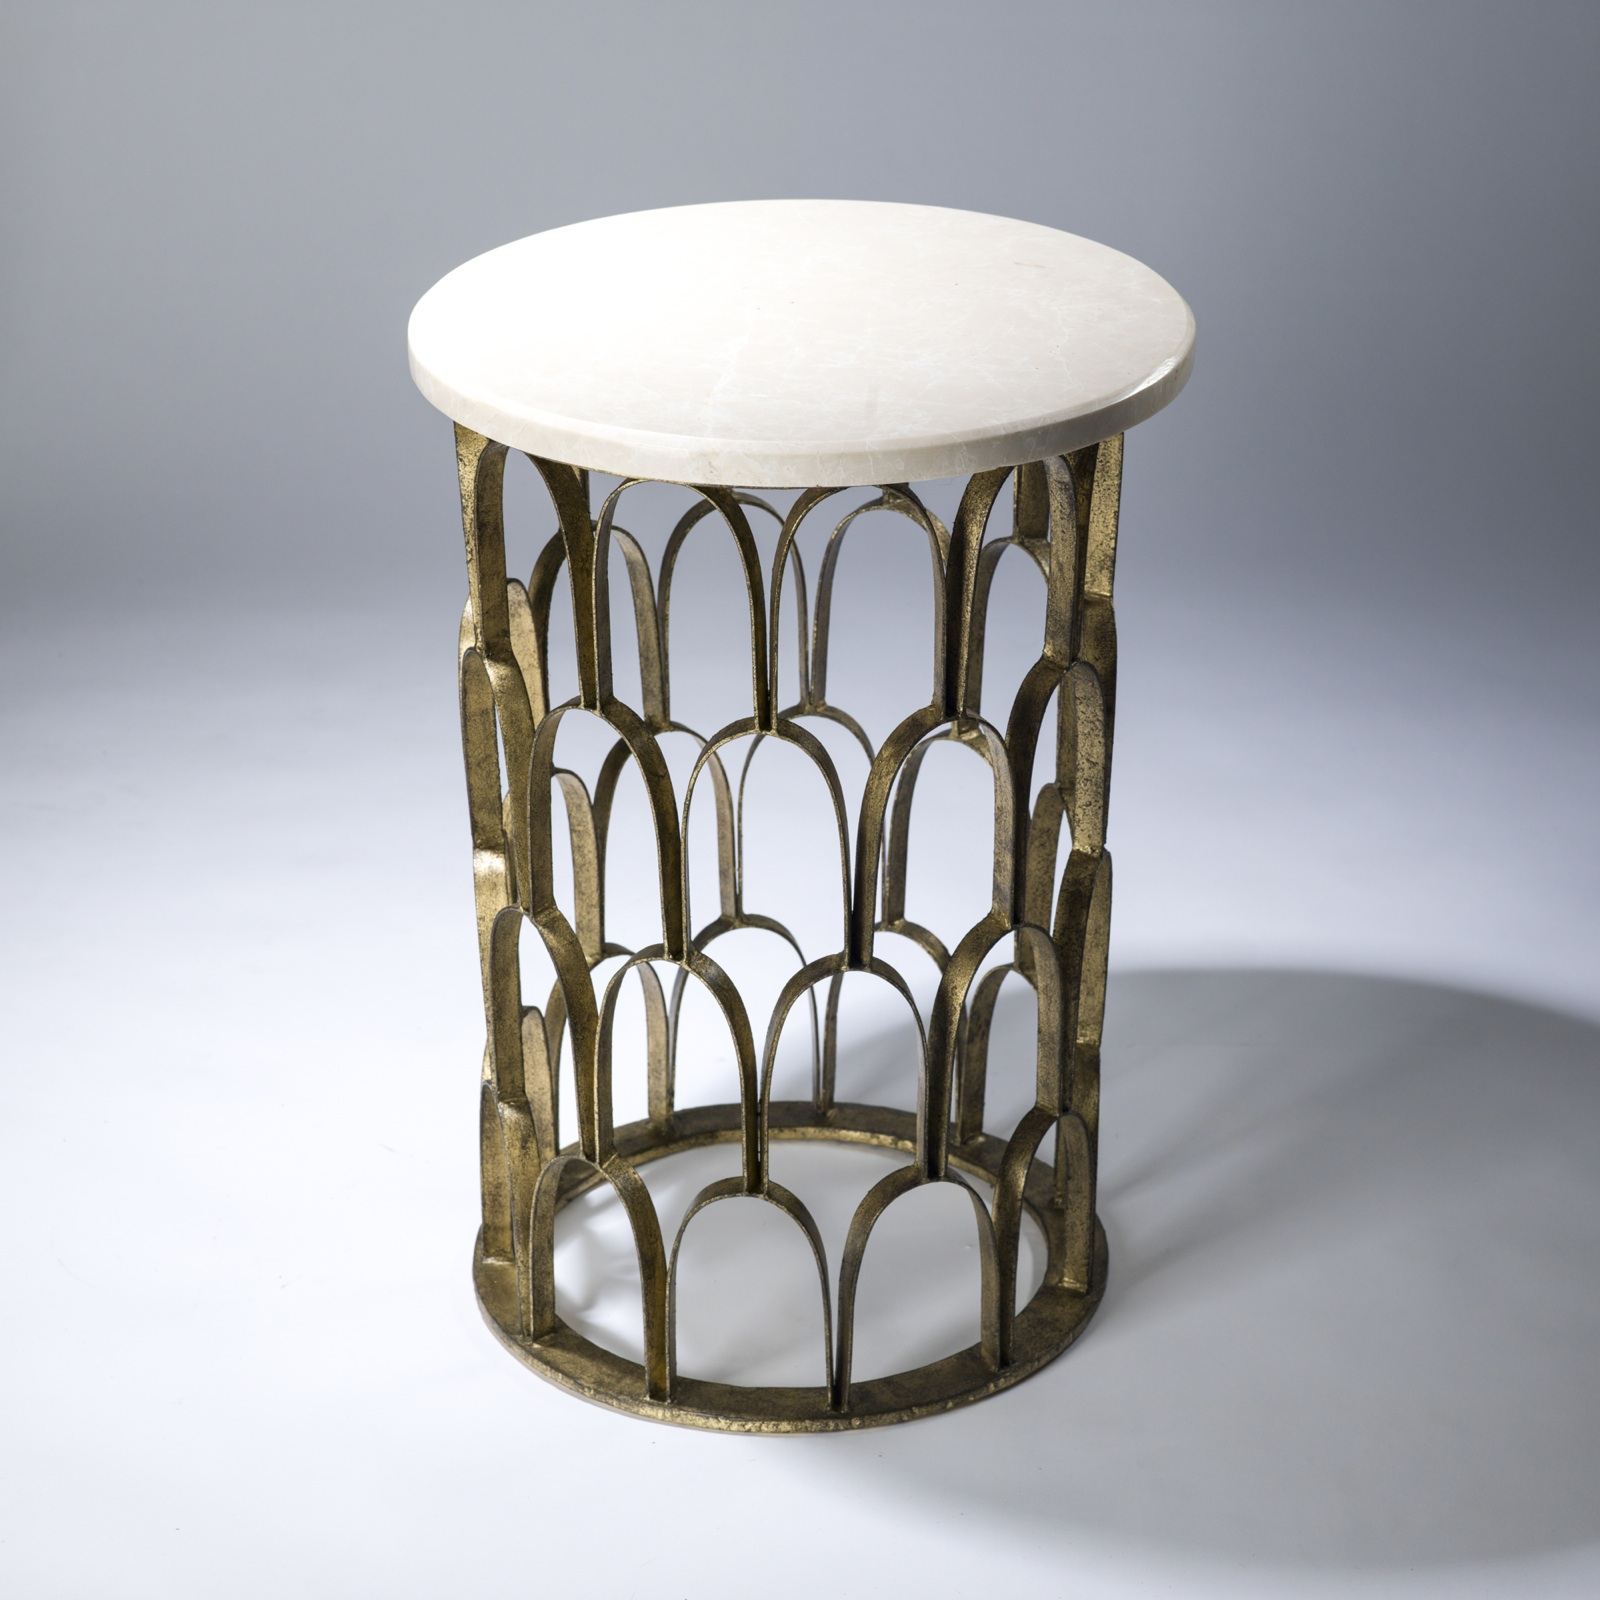 decorative side table web value distressed round accent fish scale gold leaf finish and marble top wood threshold transition old glass bedside tile patio outdoor furniture mission